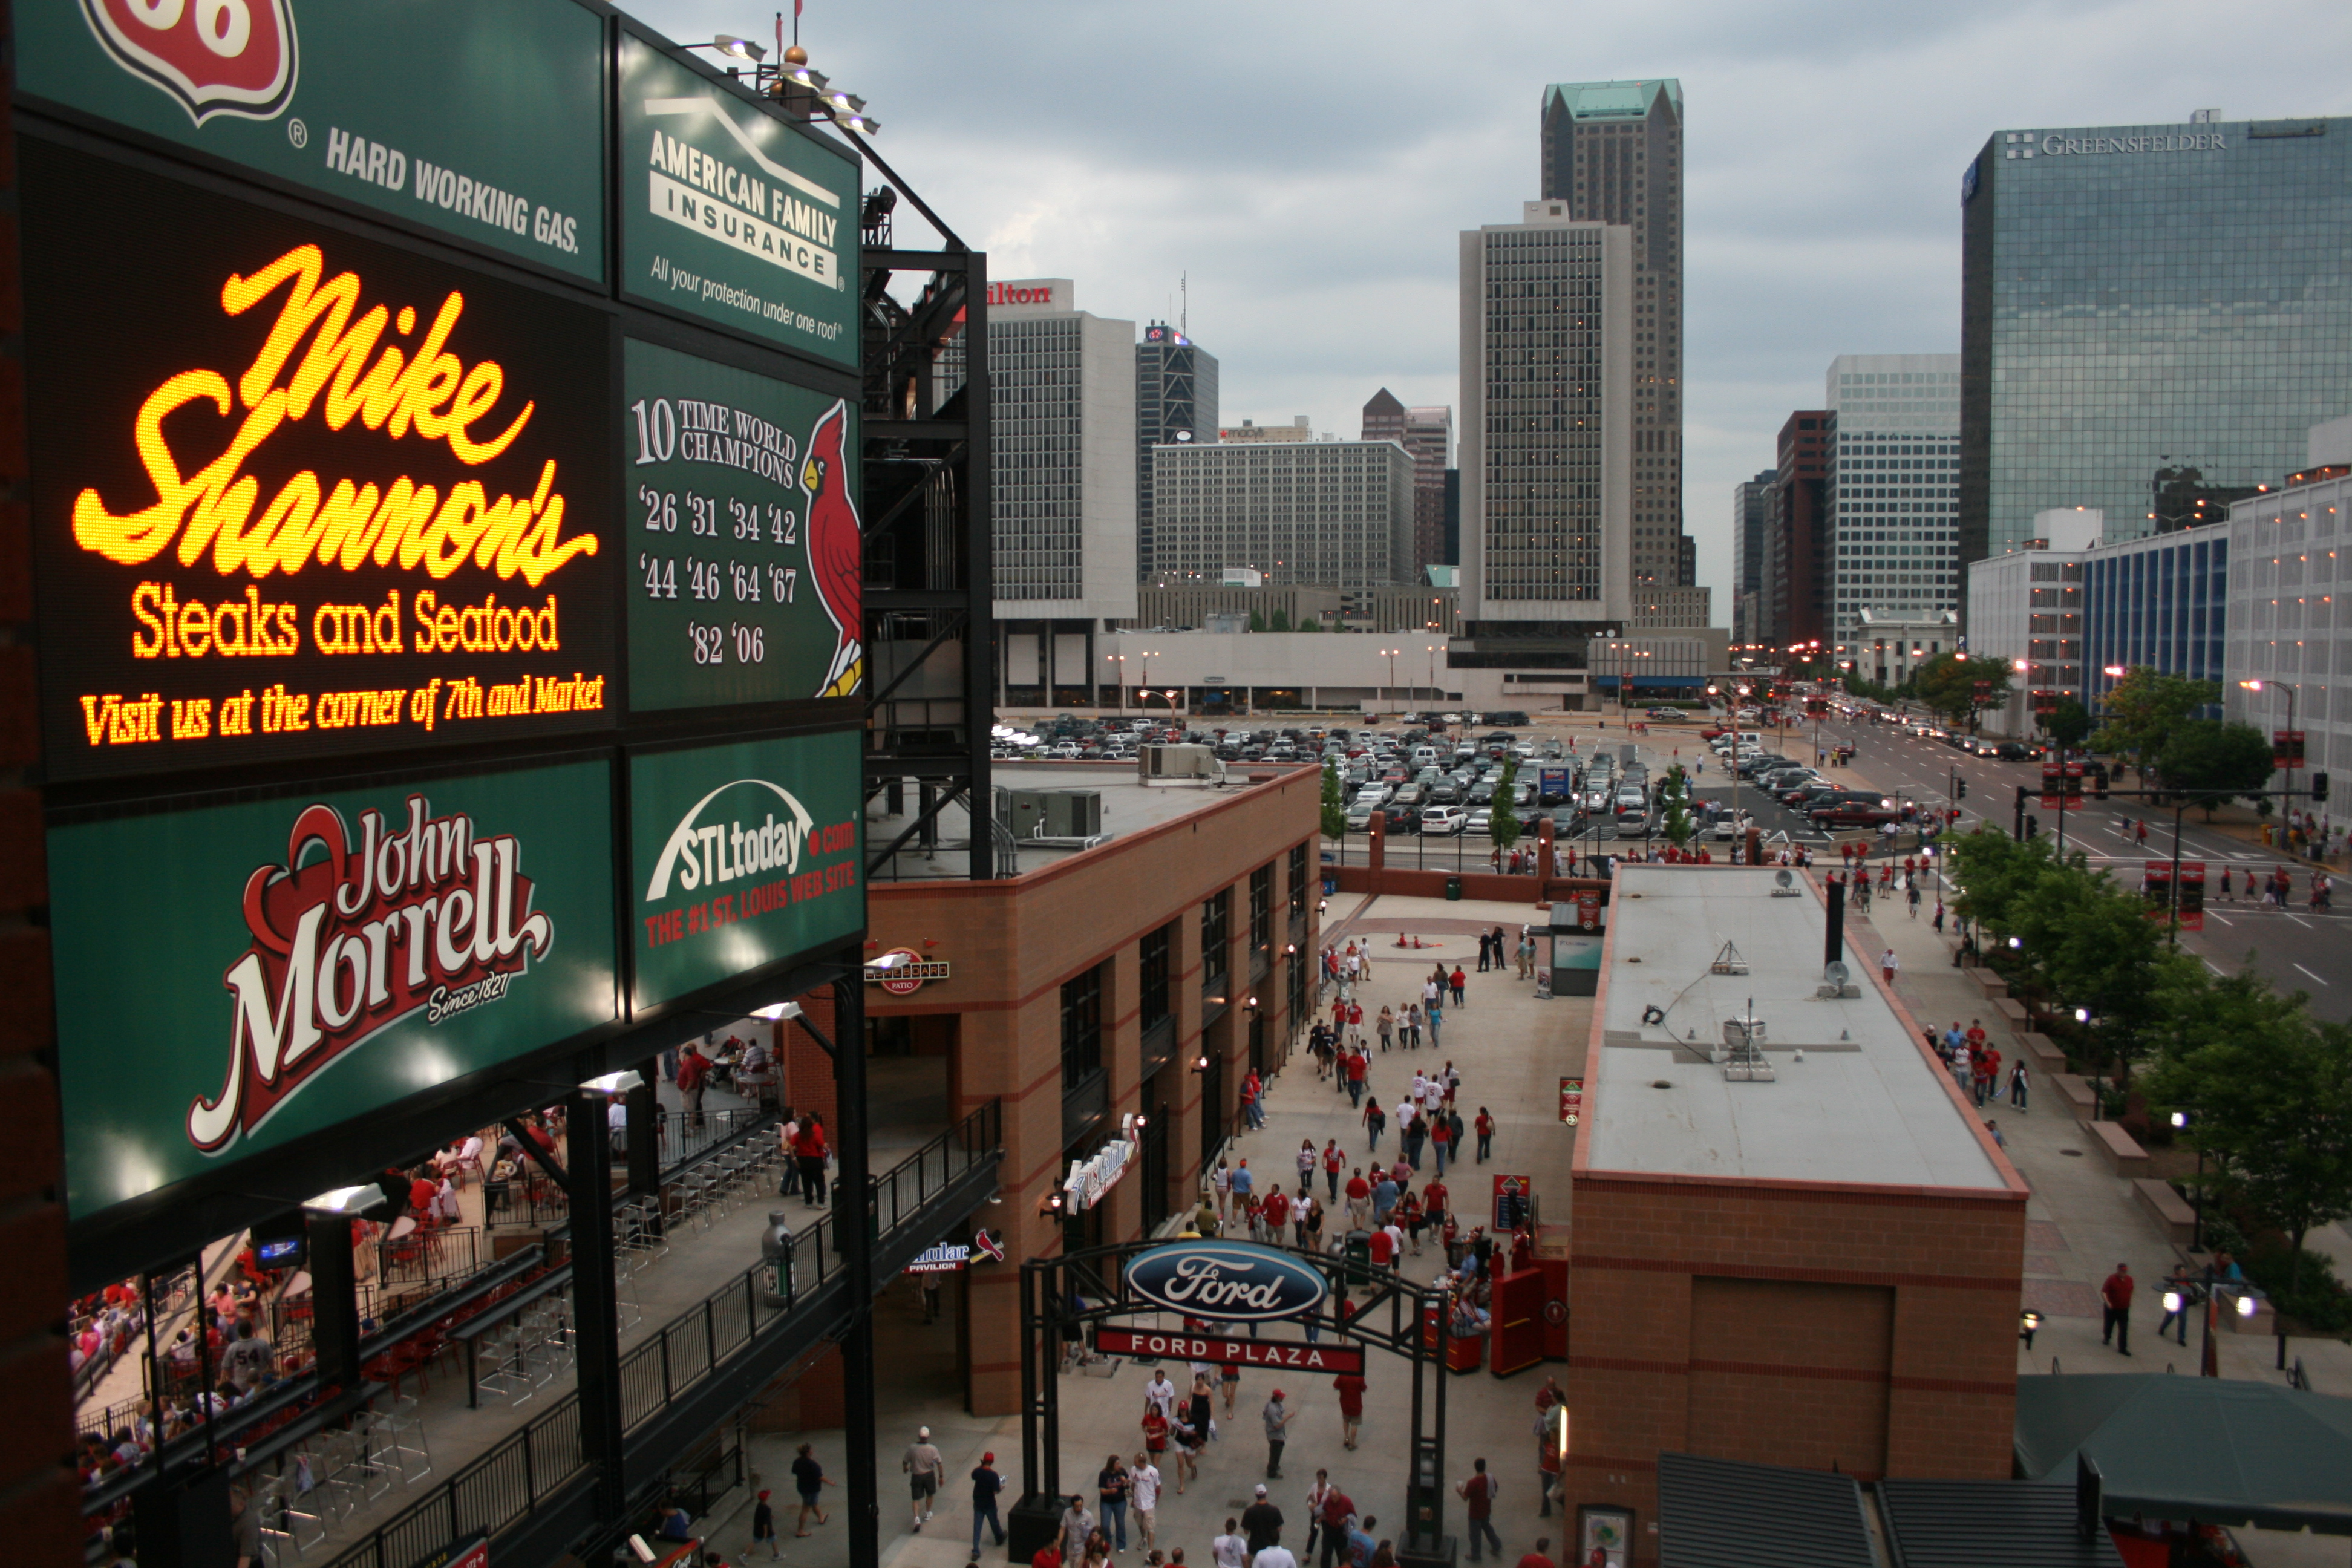 Busch Stadium Has An Open Atmosphere That Should Work Well With The Neighborhood Develops Around